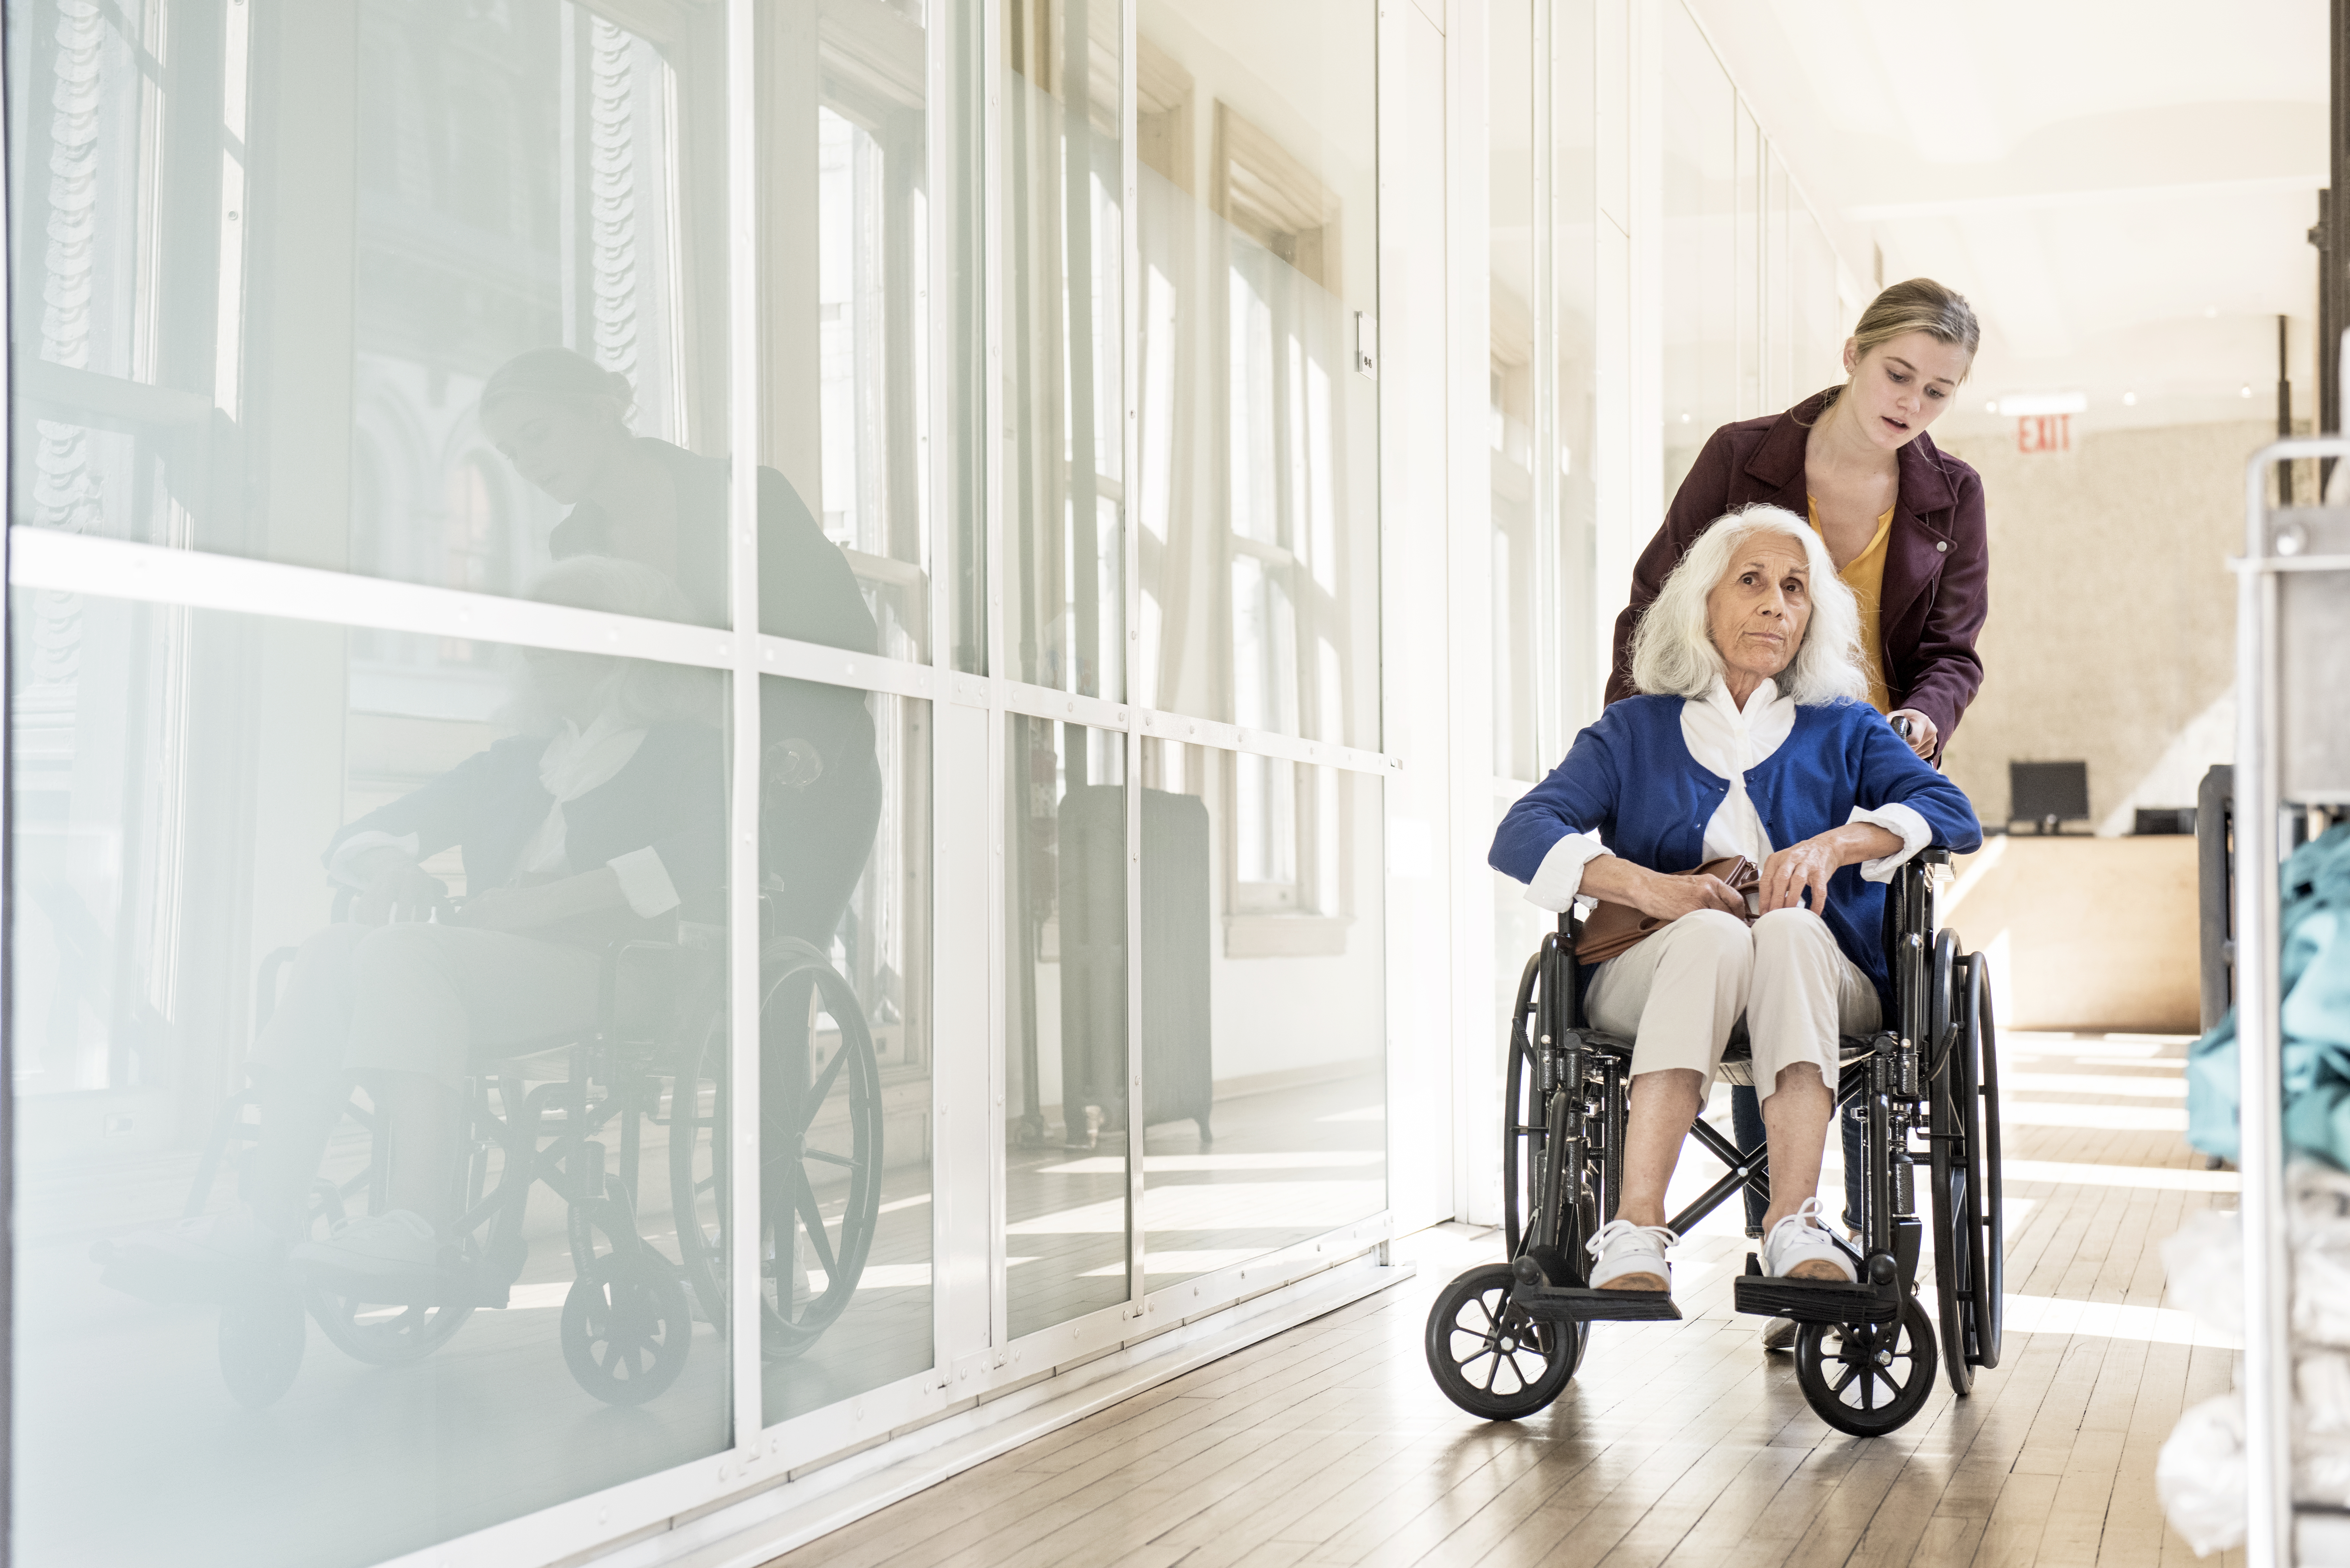 Patient in wheelchair- Image